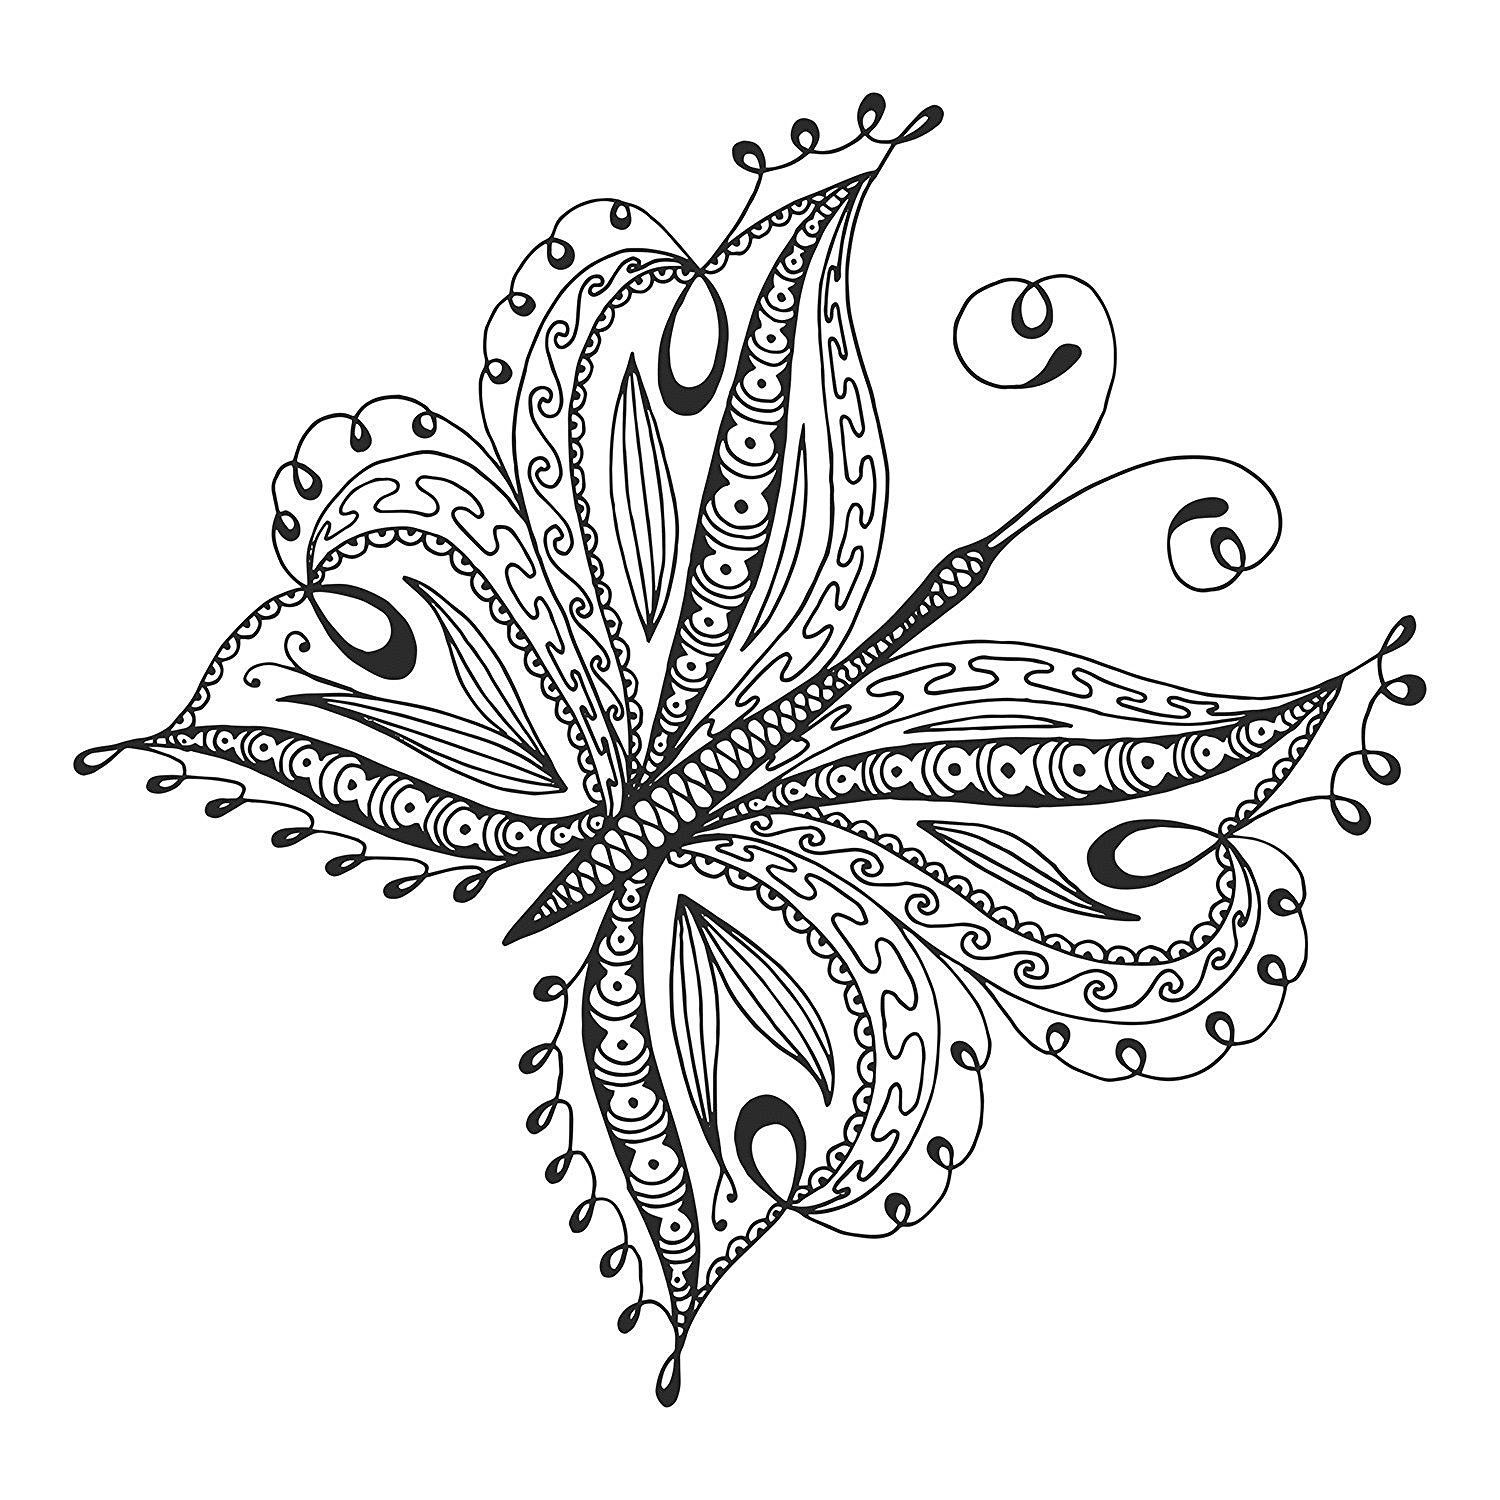 Amazon Com New Nature Stress Relieving Coloring Book For Adults With Coloring Pencils Butterfly Coloring Page Coloring Pages Coloring Books [ 1500 x 1500 Pixel ]